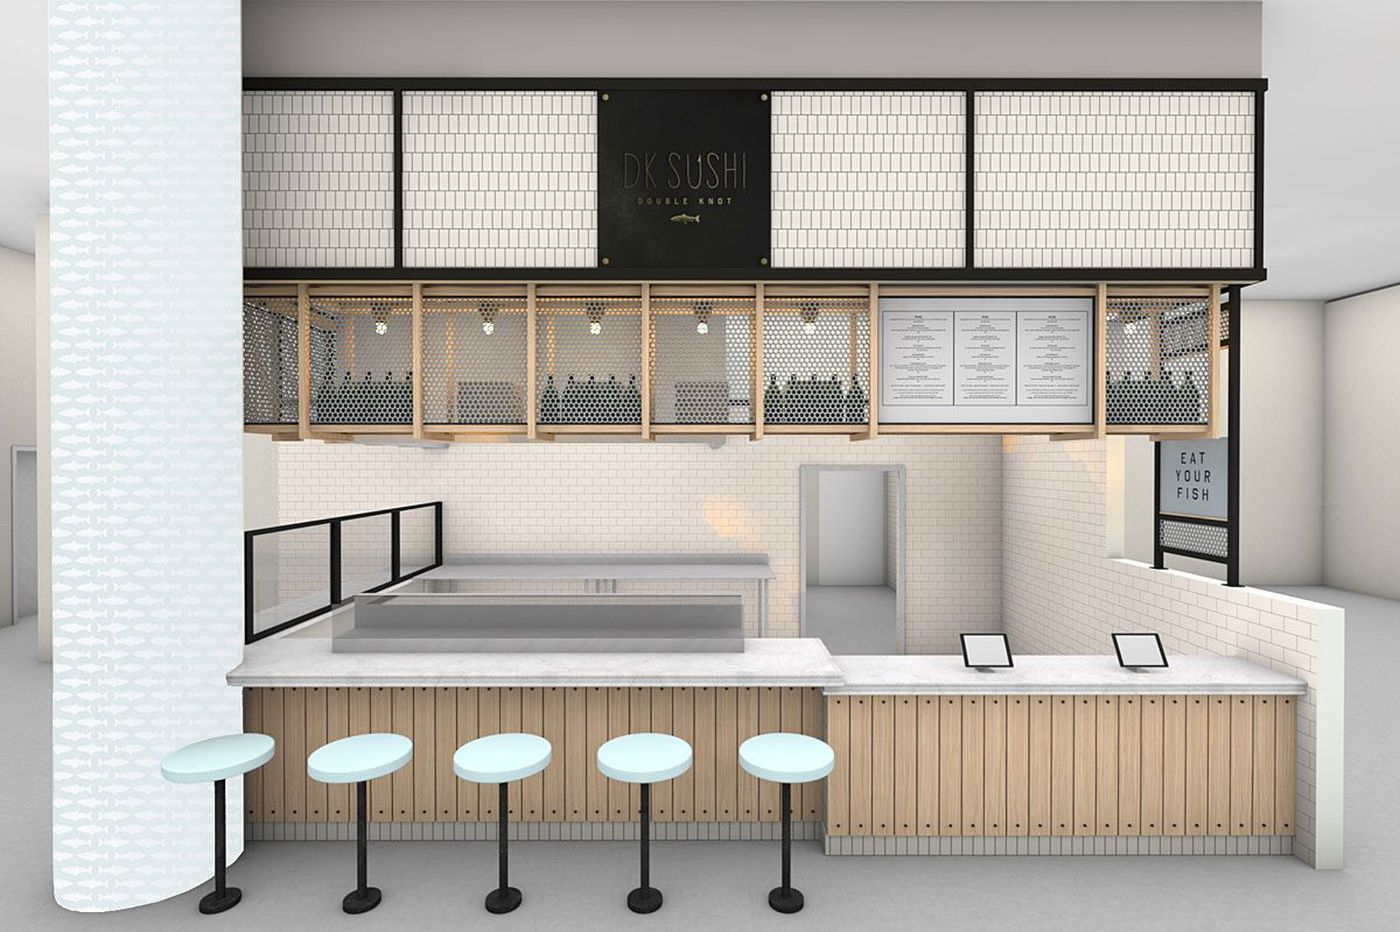 Double Knot and High Street on Market join Penn Food Hall